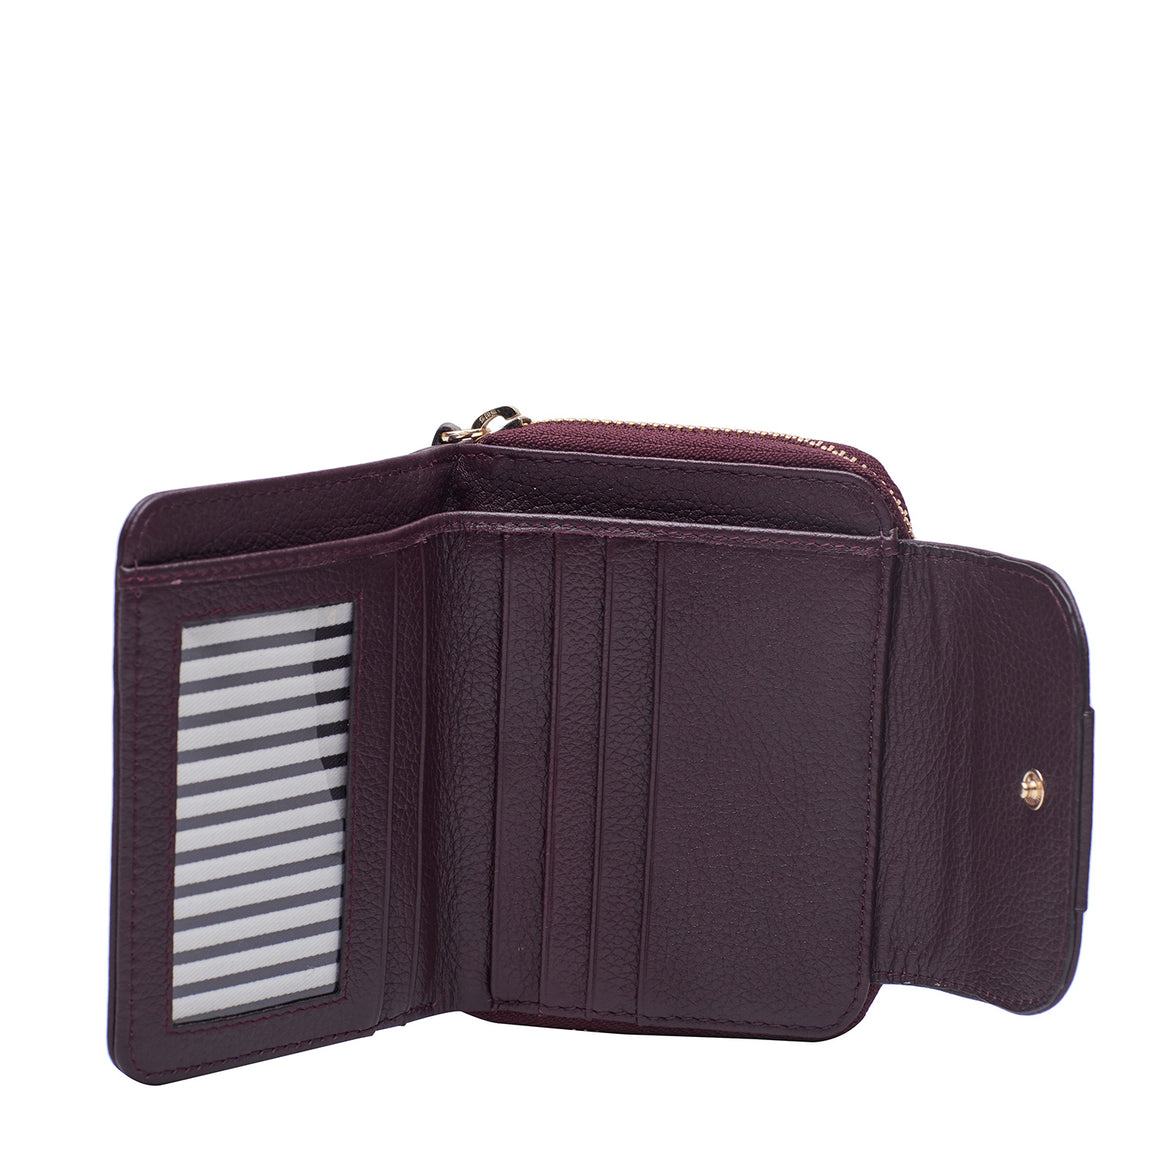 WT 0020 - TOHL FINSBURY MINI WOMEN'S  WALLET - PLUM